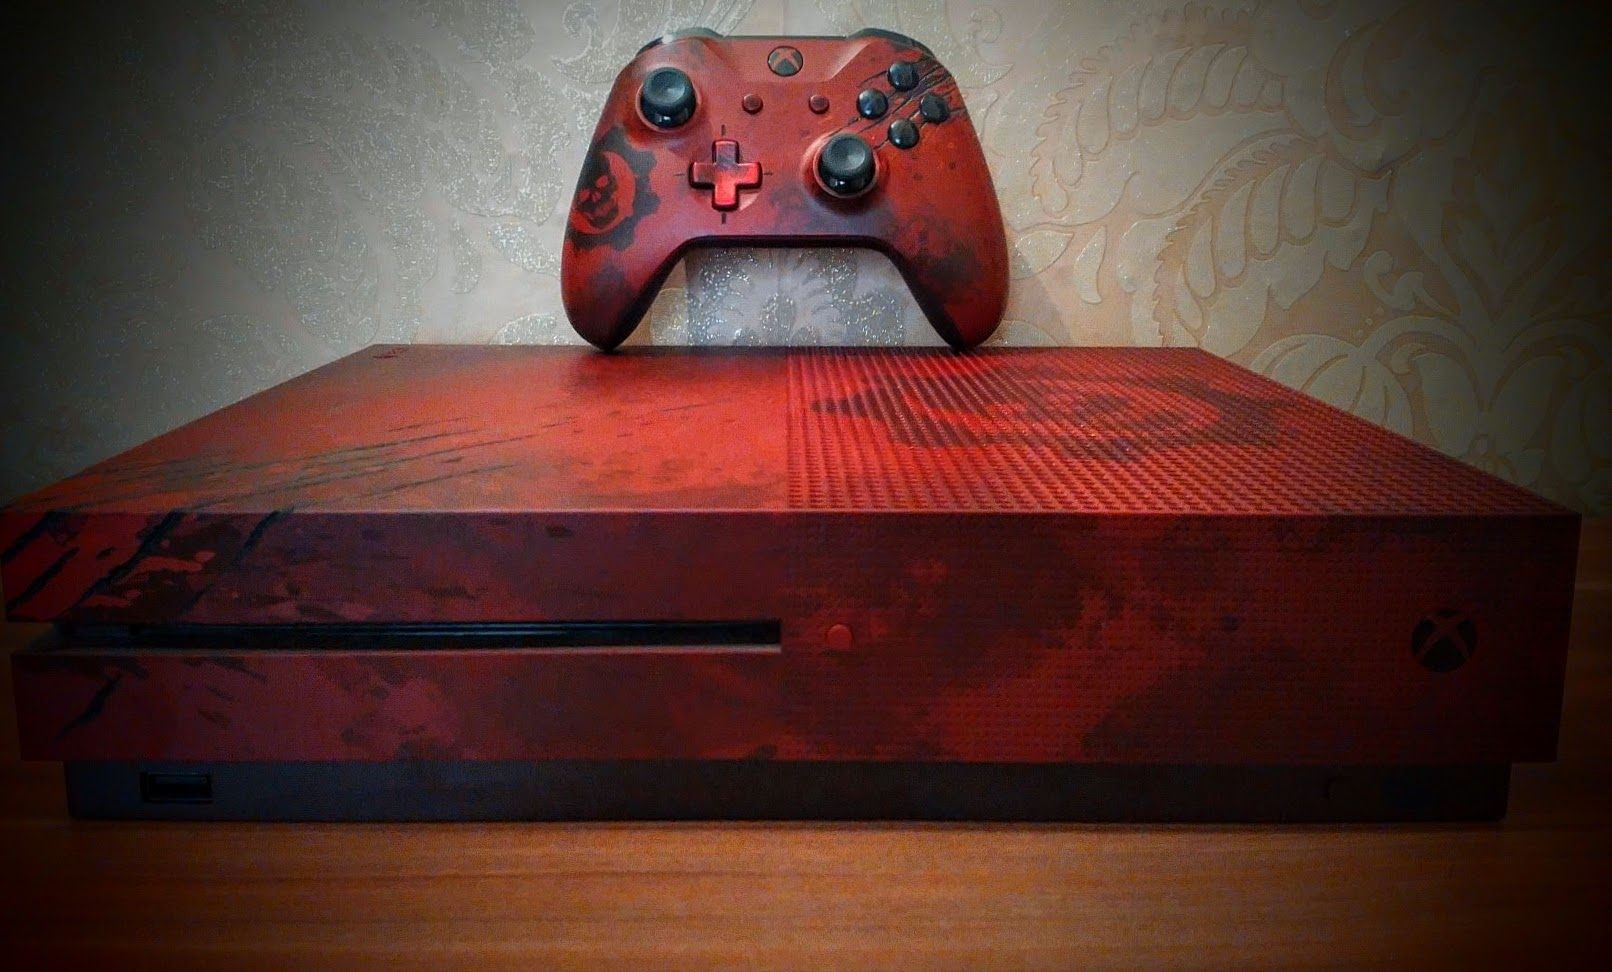 Xbox One S - Gears of War 4 Limited Edition 2TB Console Review